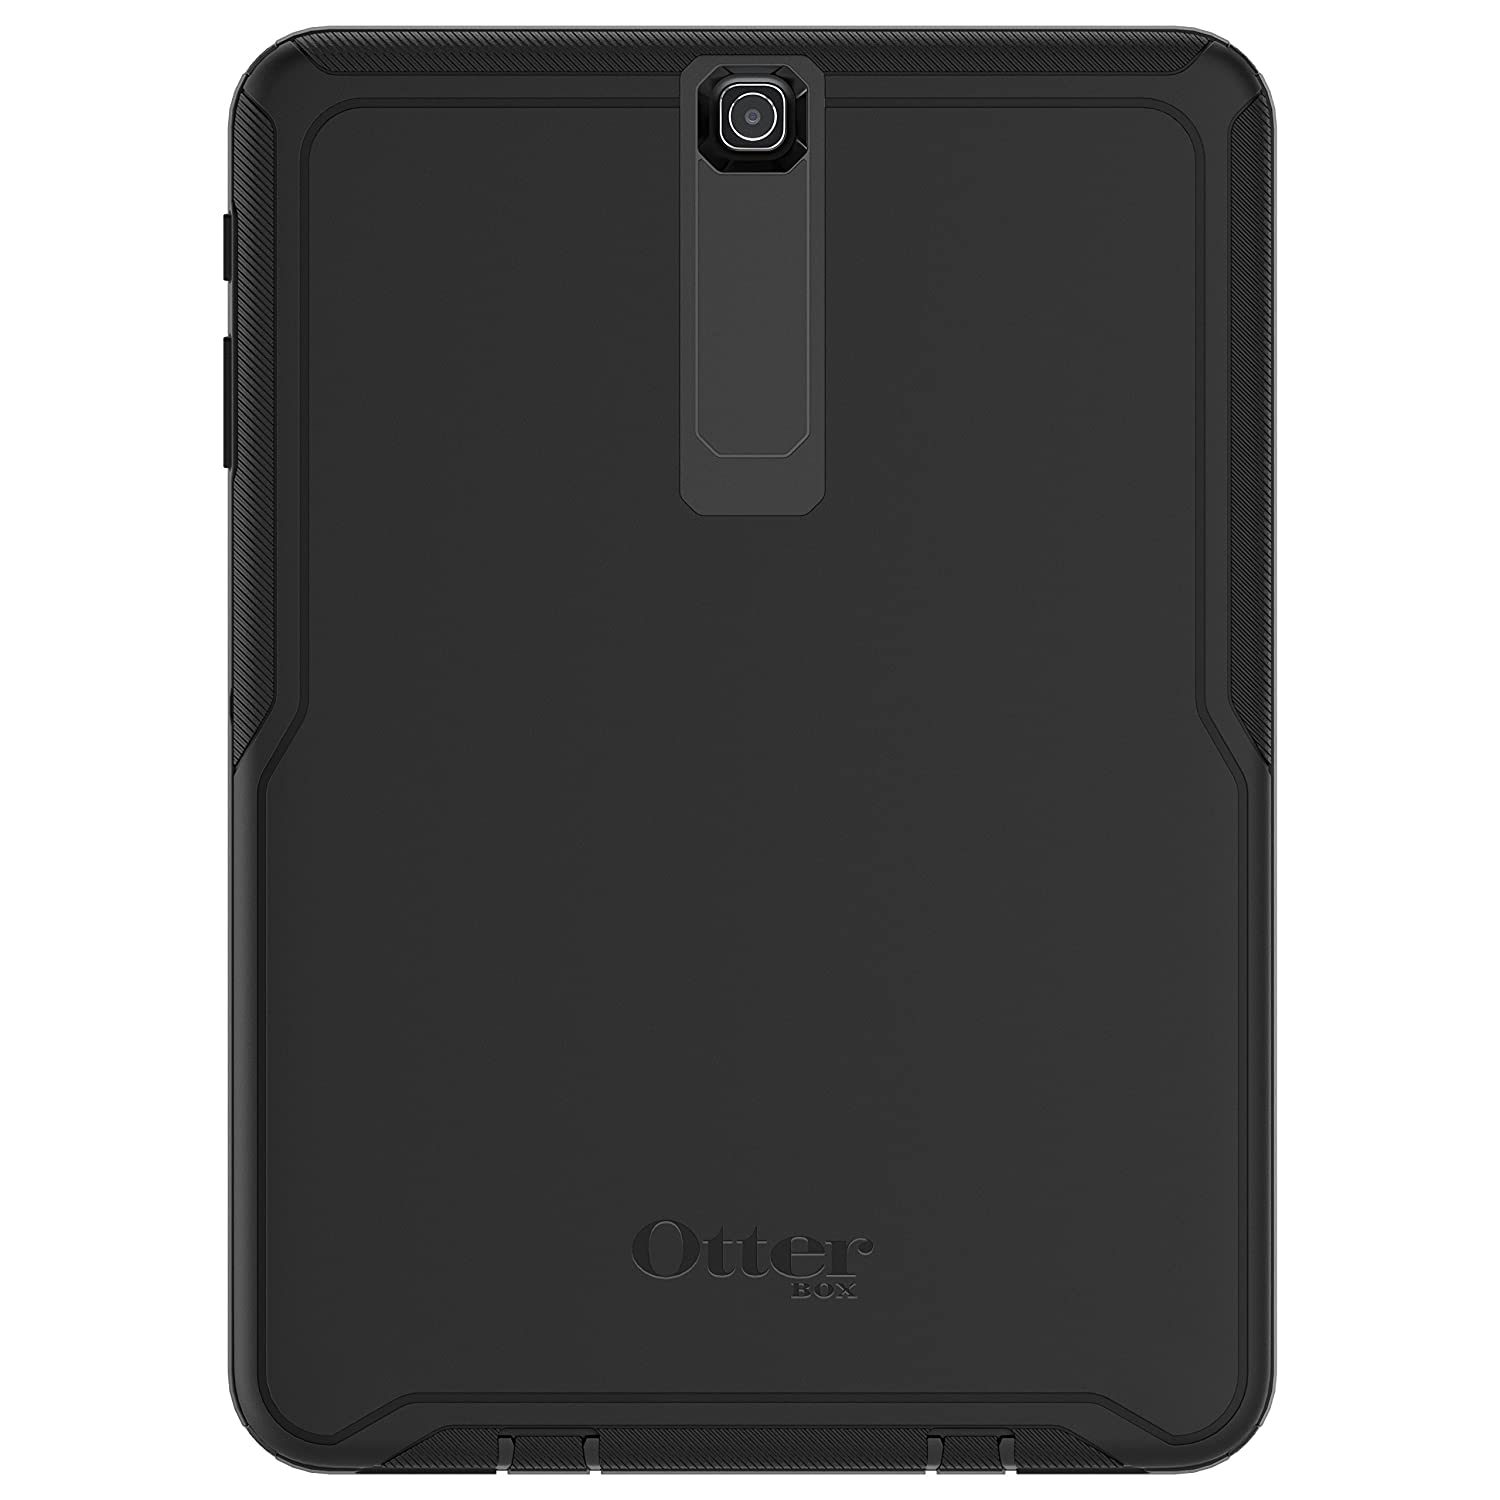 cheap for discount 52e64 49352 OtterBox Defender Series Case for Samsung Galaxy TAB S2 9.7